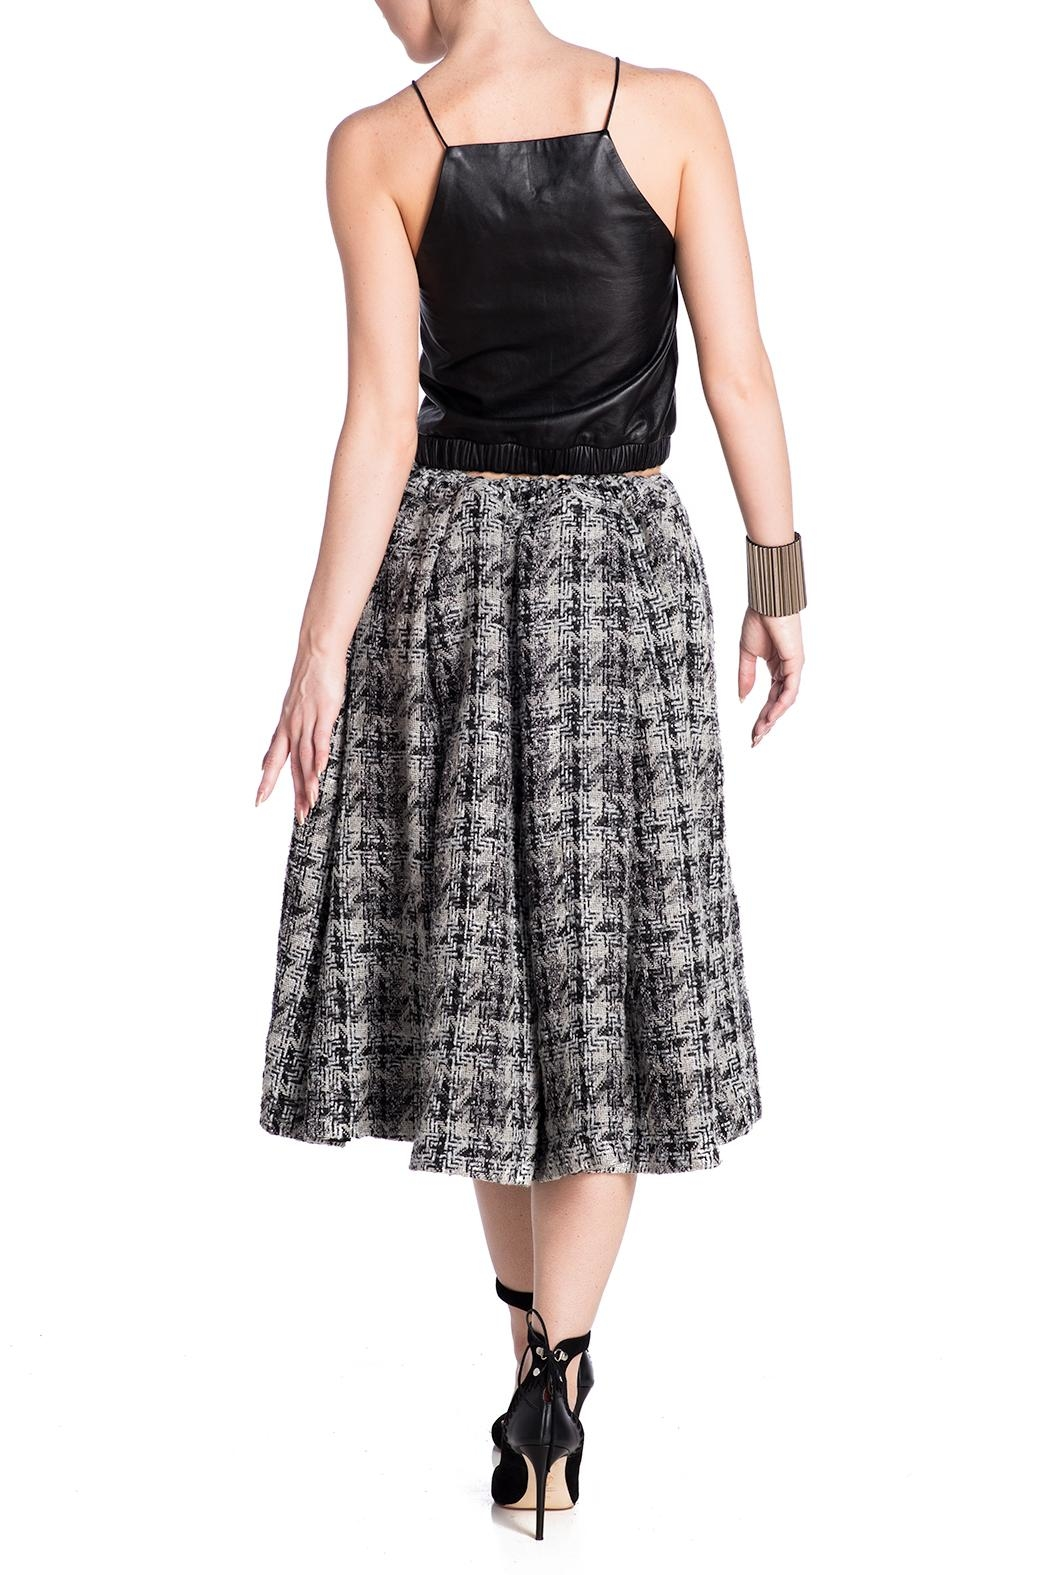 E. Tautz Pull Tie Wool Skirt - Back Cropped Image